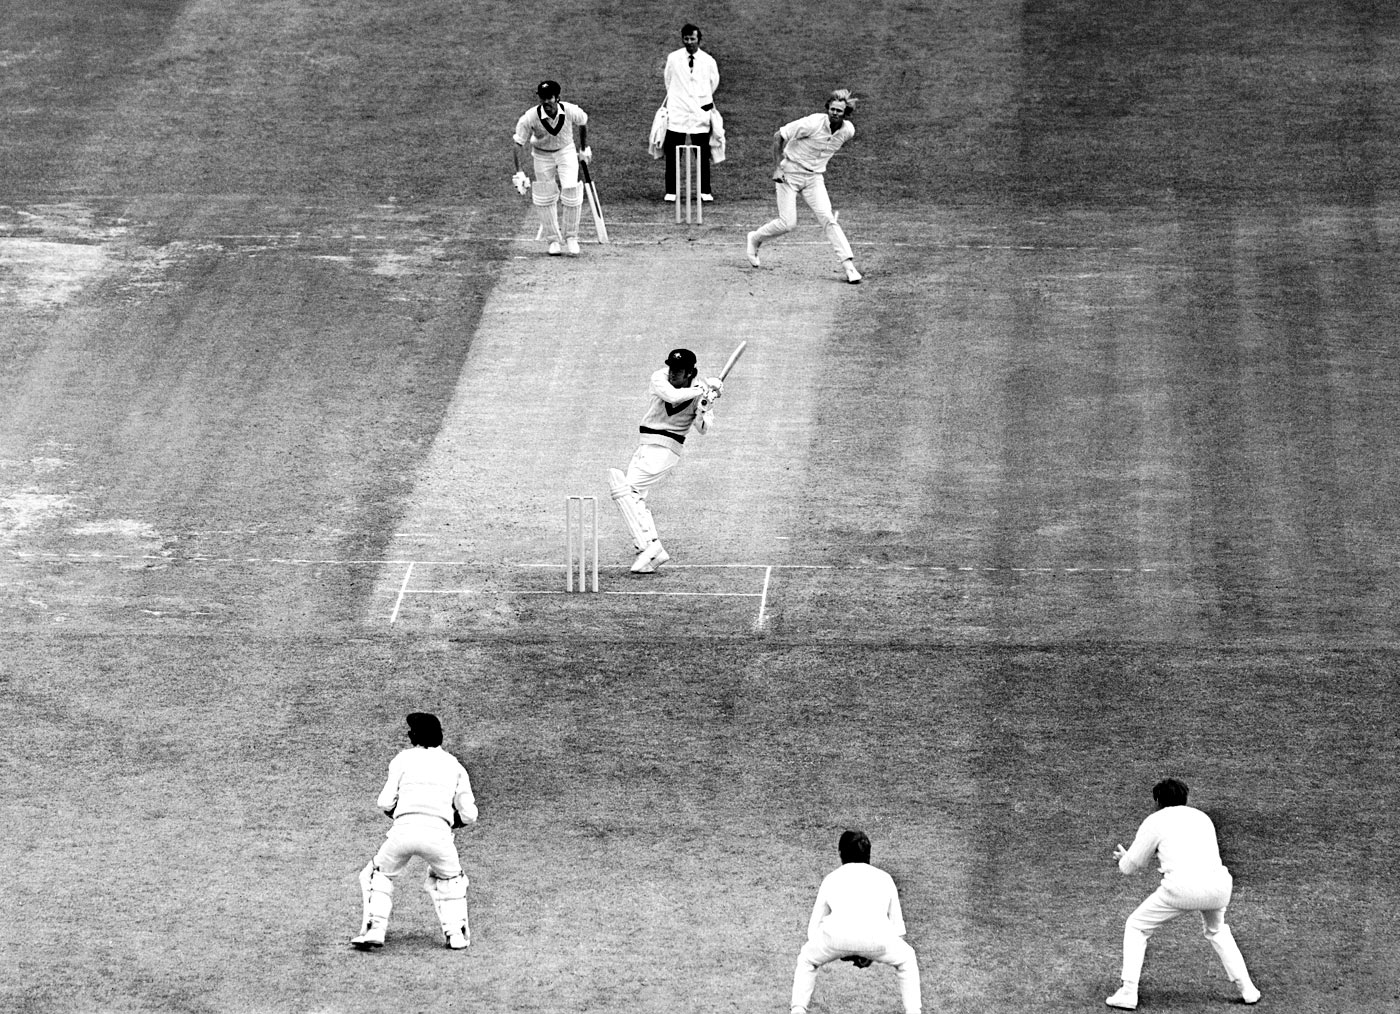 Ian Chappell preferred to not wear a helmet, relying on his expert hooking skills to counter rising balls